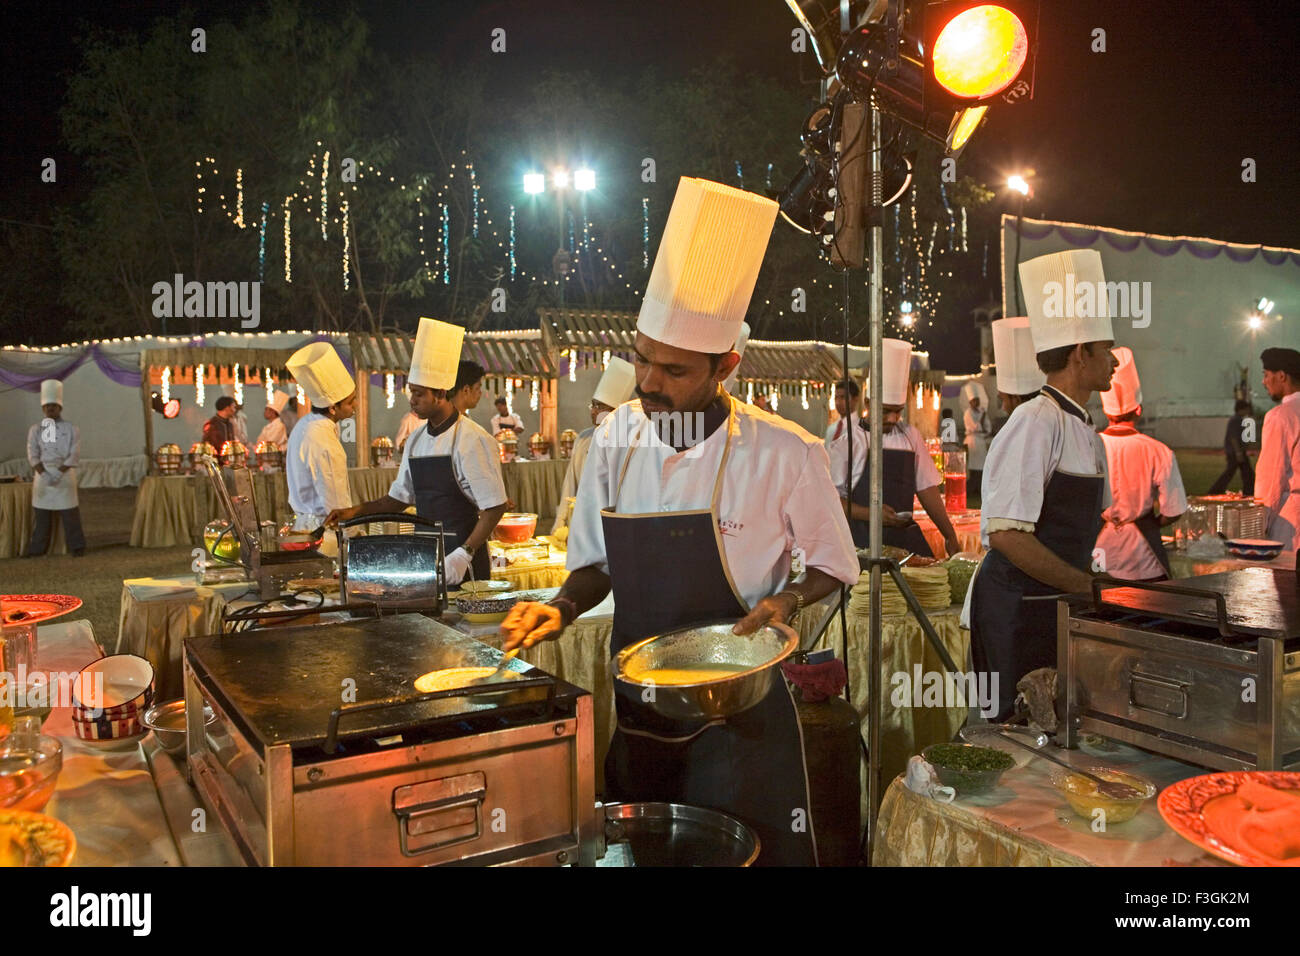 Chefs busy in preparing food for guests at Indian wedding ; Bombay Mumbai ; Maharashtra ; India - Stock Image